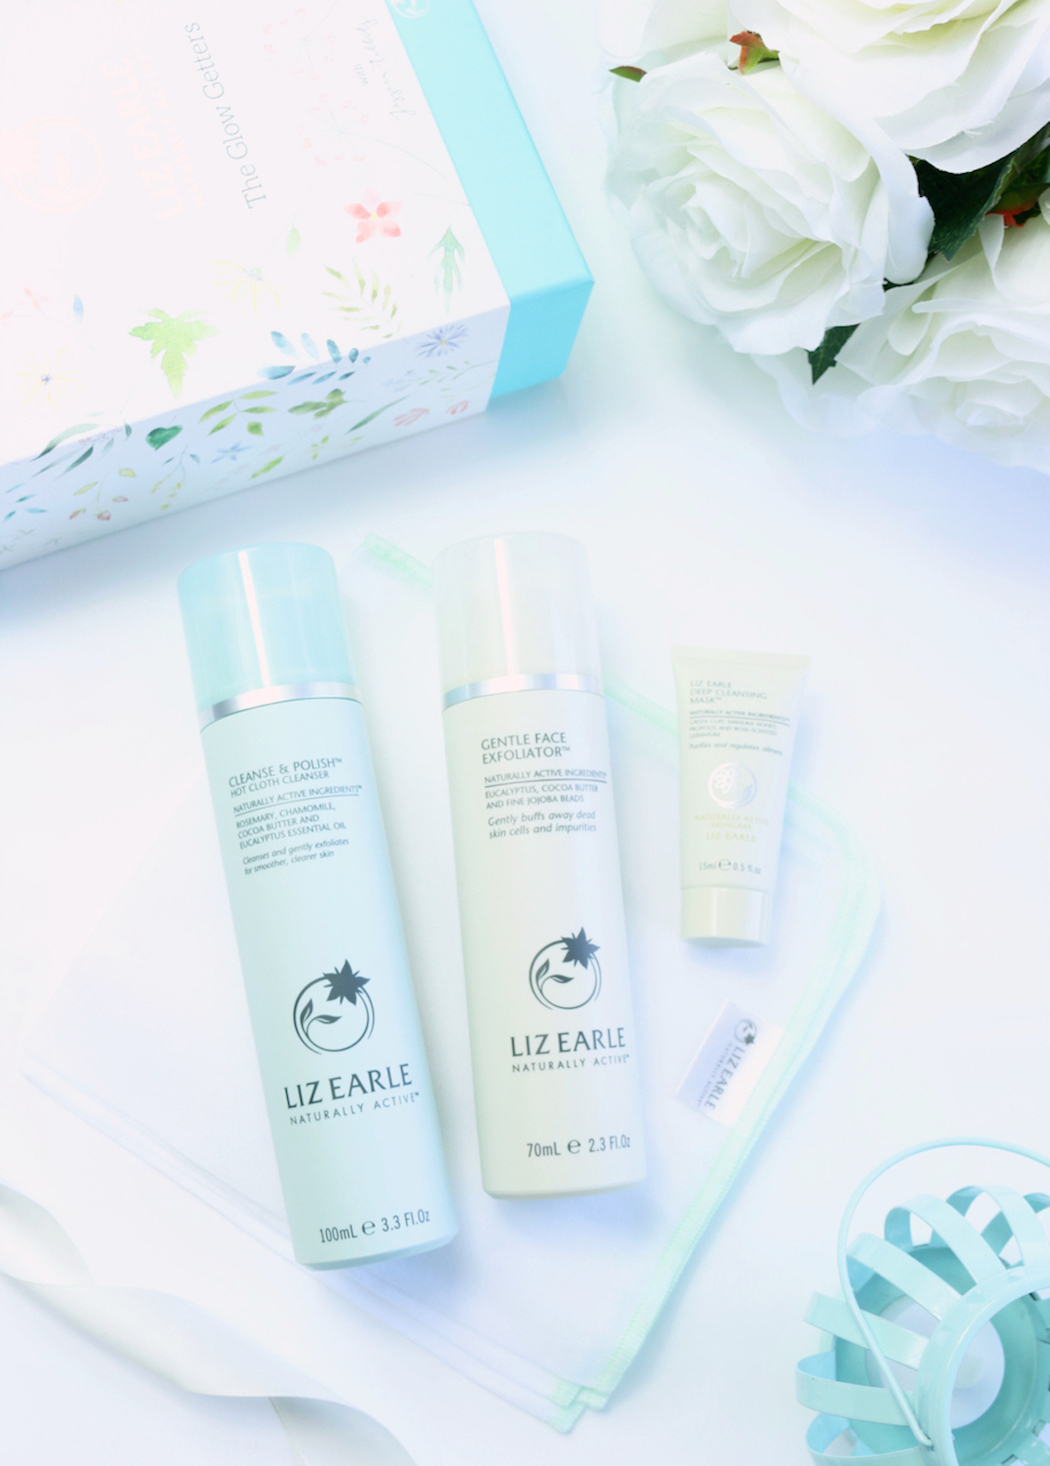 Liz Earle The Glow Getters Gift Set, including the Liz Earle Cleanse & Polish Hot Cloth Cleaner, Liz Earle Gentle Face Exfoliator and Liz Earle Deep Cleansing Mask